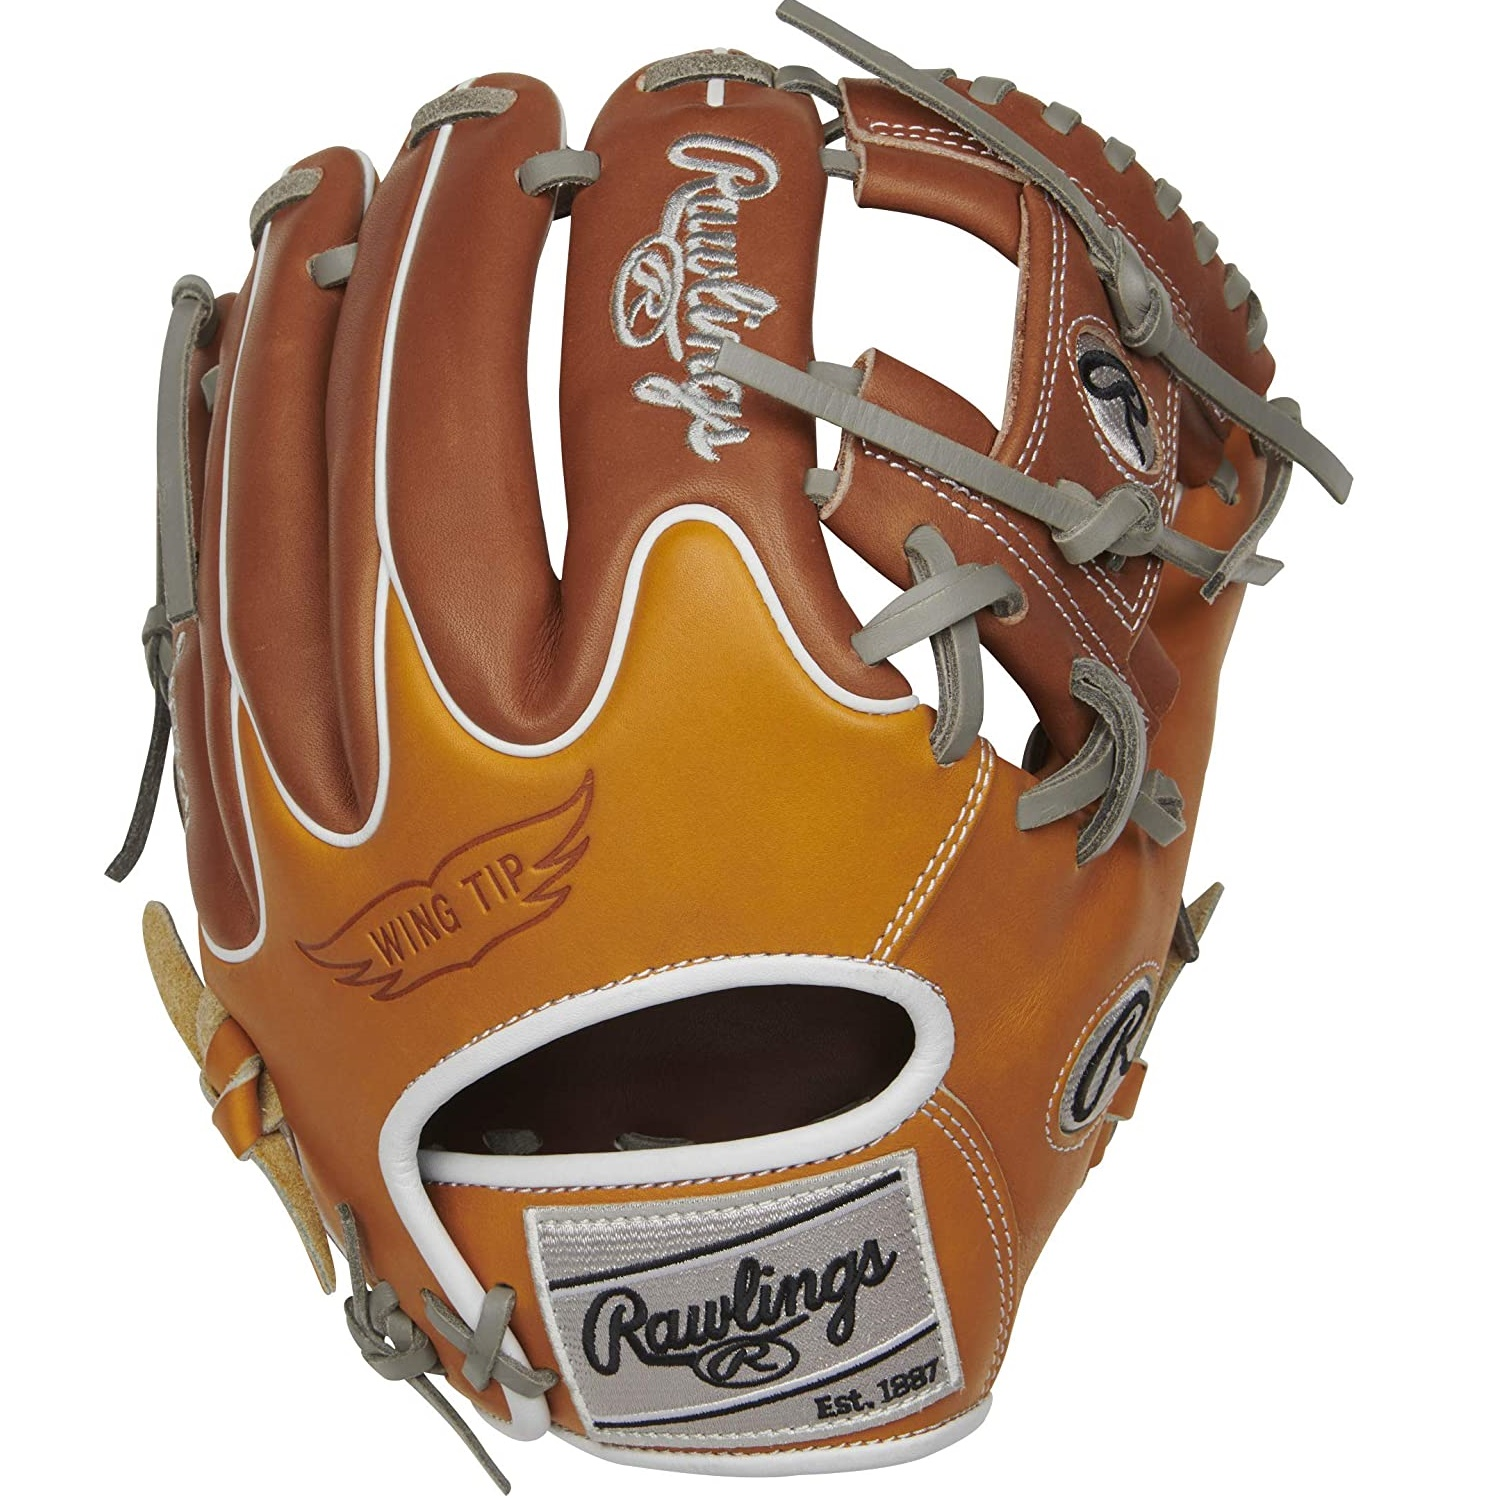 With an additional 25% factory break in, the 11.5-inch Rawlings R2G infield glove provides everything players love about a Heart of the Hide in a game-ready model. This pro model glove comes in a popular pro infield pattern with an I-web. As you would expect when you see the palm logo, this glove is crafted from ultra-premium Heart of the hide leather, renowned for its durability and ability to form the perfect pocket. Fit and comfort are also important and this glove absolutely delivers. A narrower hand opening and a deer-tanned cowhide palm lining provides a contoured fit around your hand and great feel for the ball in all conditions. The Wing Tip back and fresh color combination are the finishing touches on this pro infield glove. Once you put this glove on your search for a great gamer will be over.  Throwing Hand:   Right  Sport:   Baseball  Back:   Conventional  Player Break-In:   Additional 25% factory break-in for game ready feel  Fit:   Narrow  Level:   Youth  Padding:   Redesigned heel pad for easier close  Series:   Heart of the Hide  Shell:   Heart of the Hide Traditional Shell  Web:   Pro I  Size:   11.5 in  Special Feature:   R2G, Wing Tip  Pattern:   200  Age Group:   High School, 14U, 12U, 10U